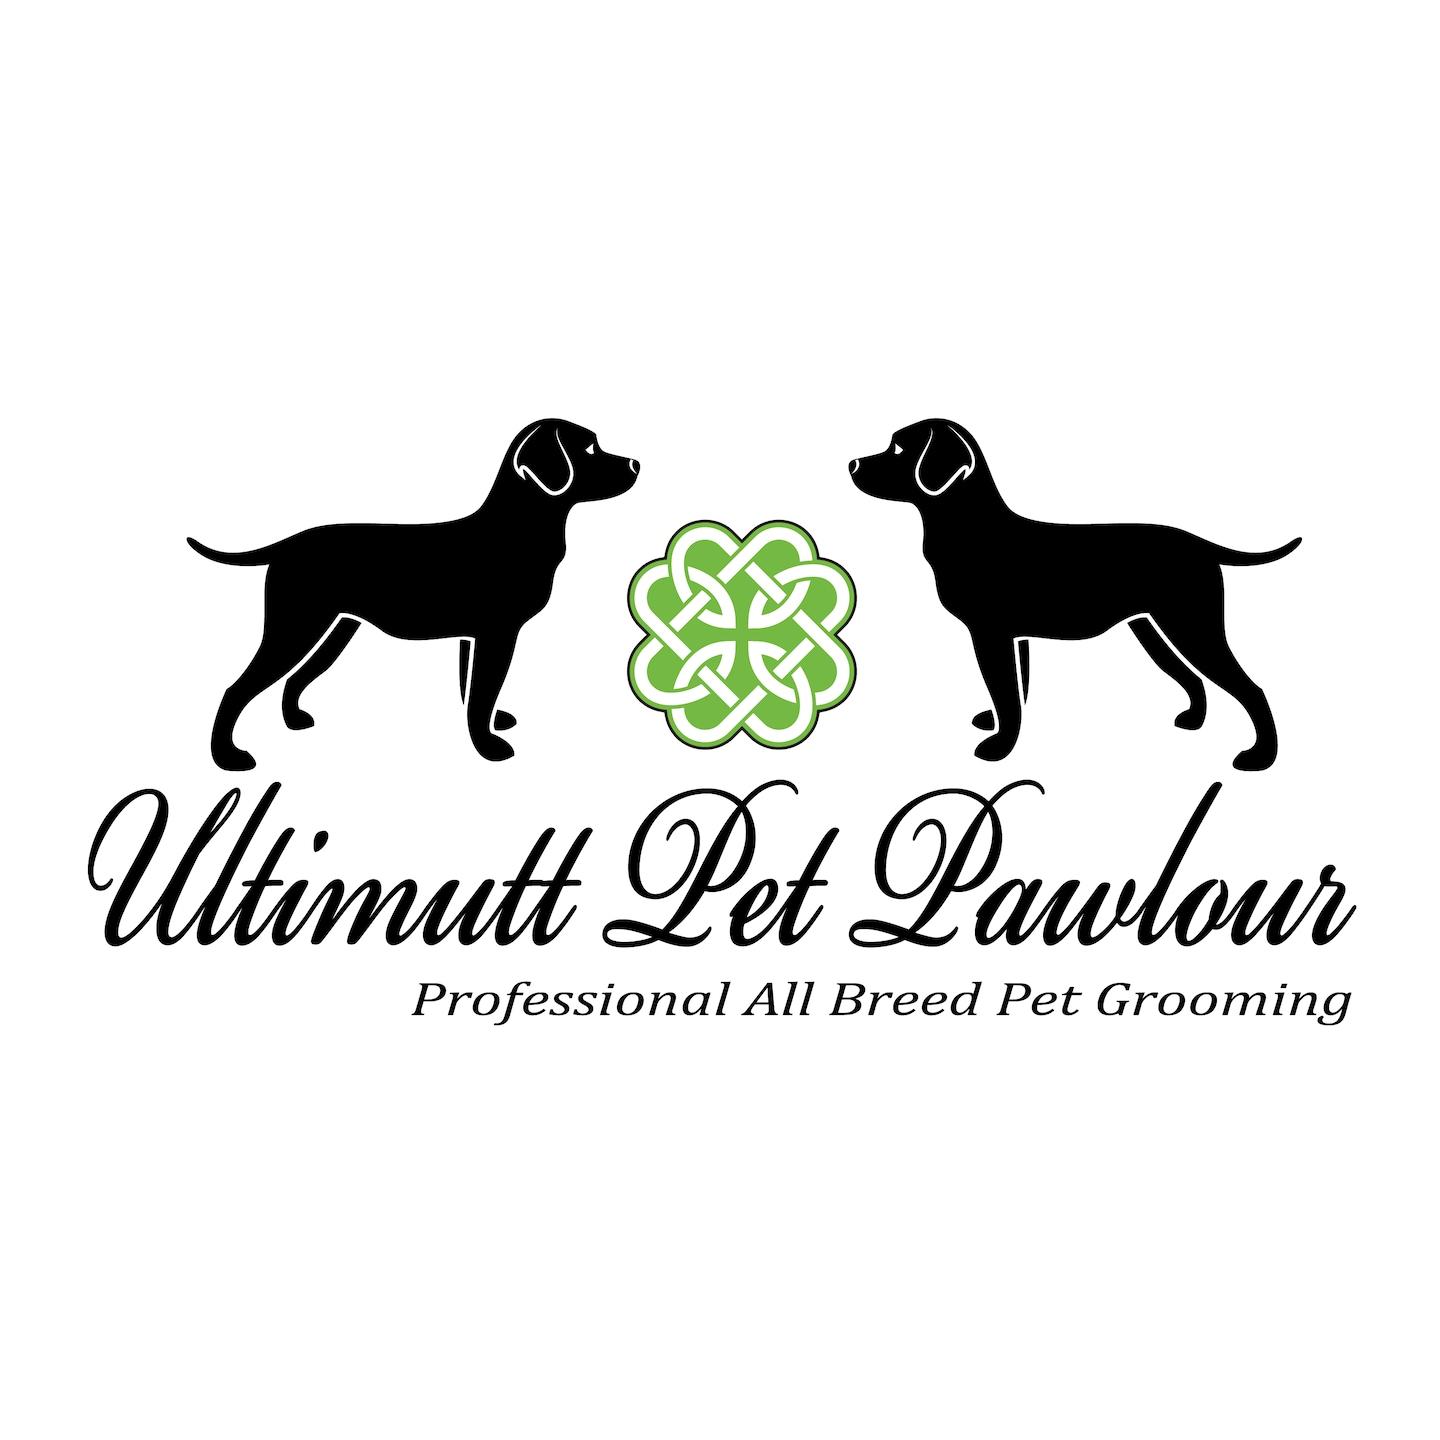 Ultimutt Pet Pawlour, LLC